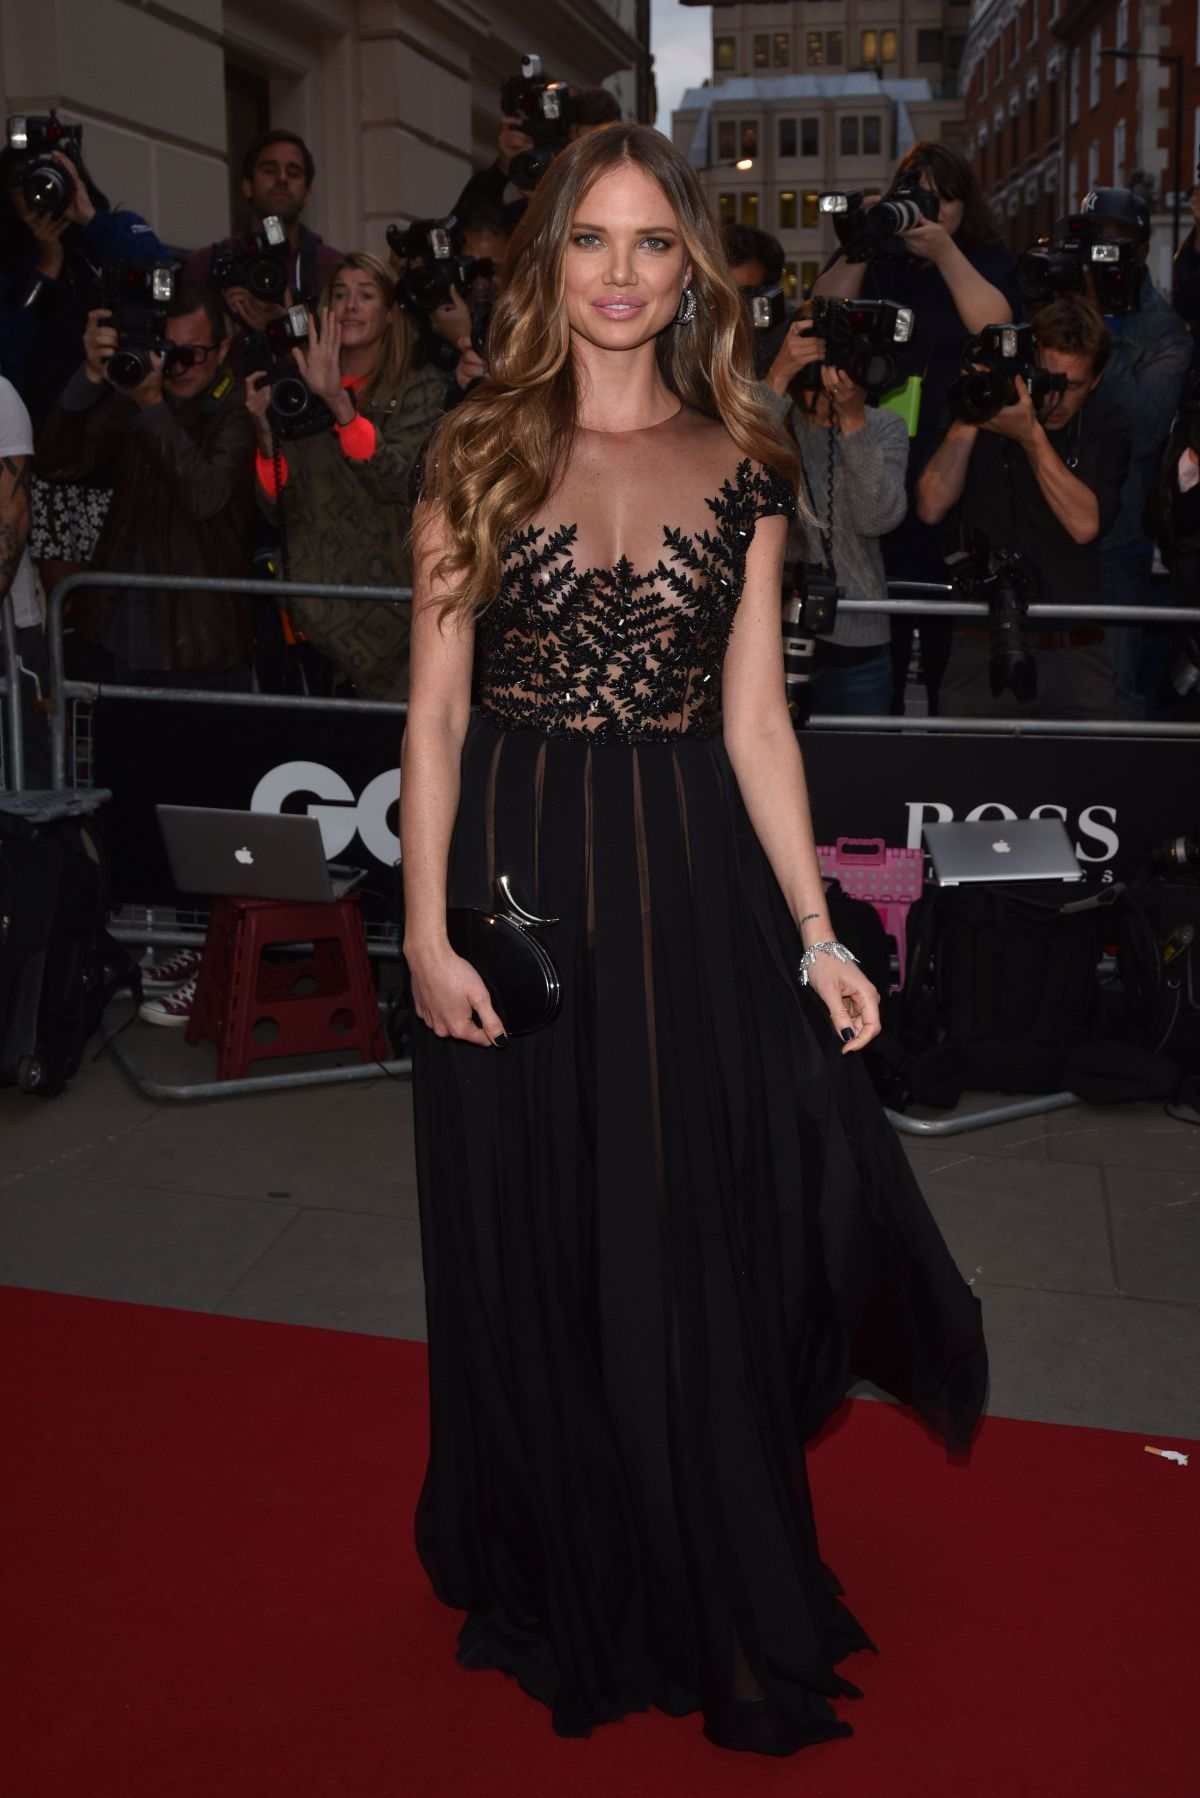 ALICIA ROUNTREE at GQ Men of the Year 2015 Awards in London